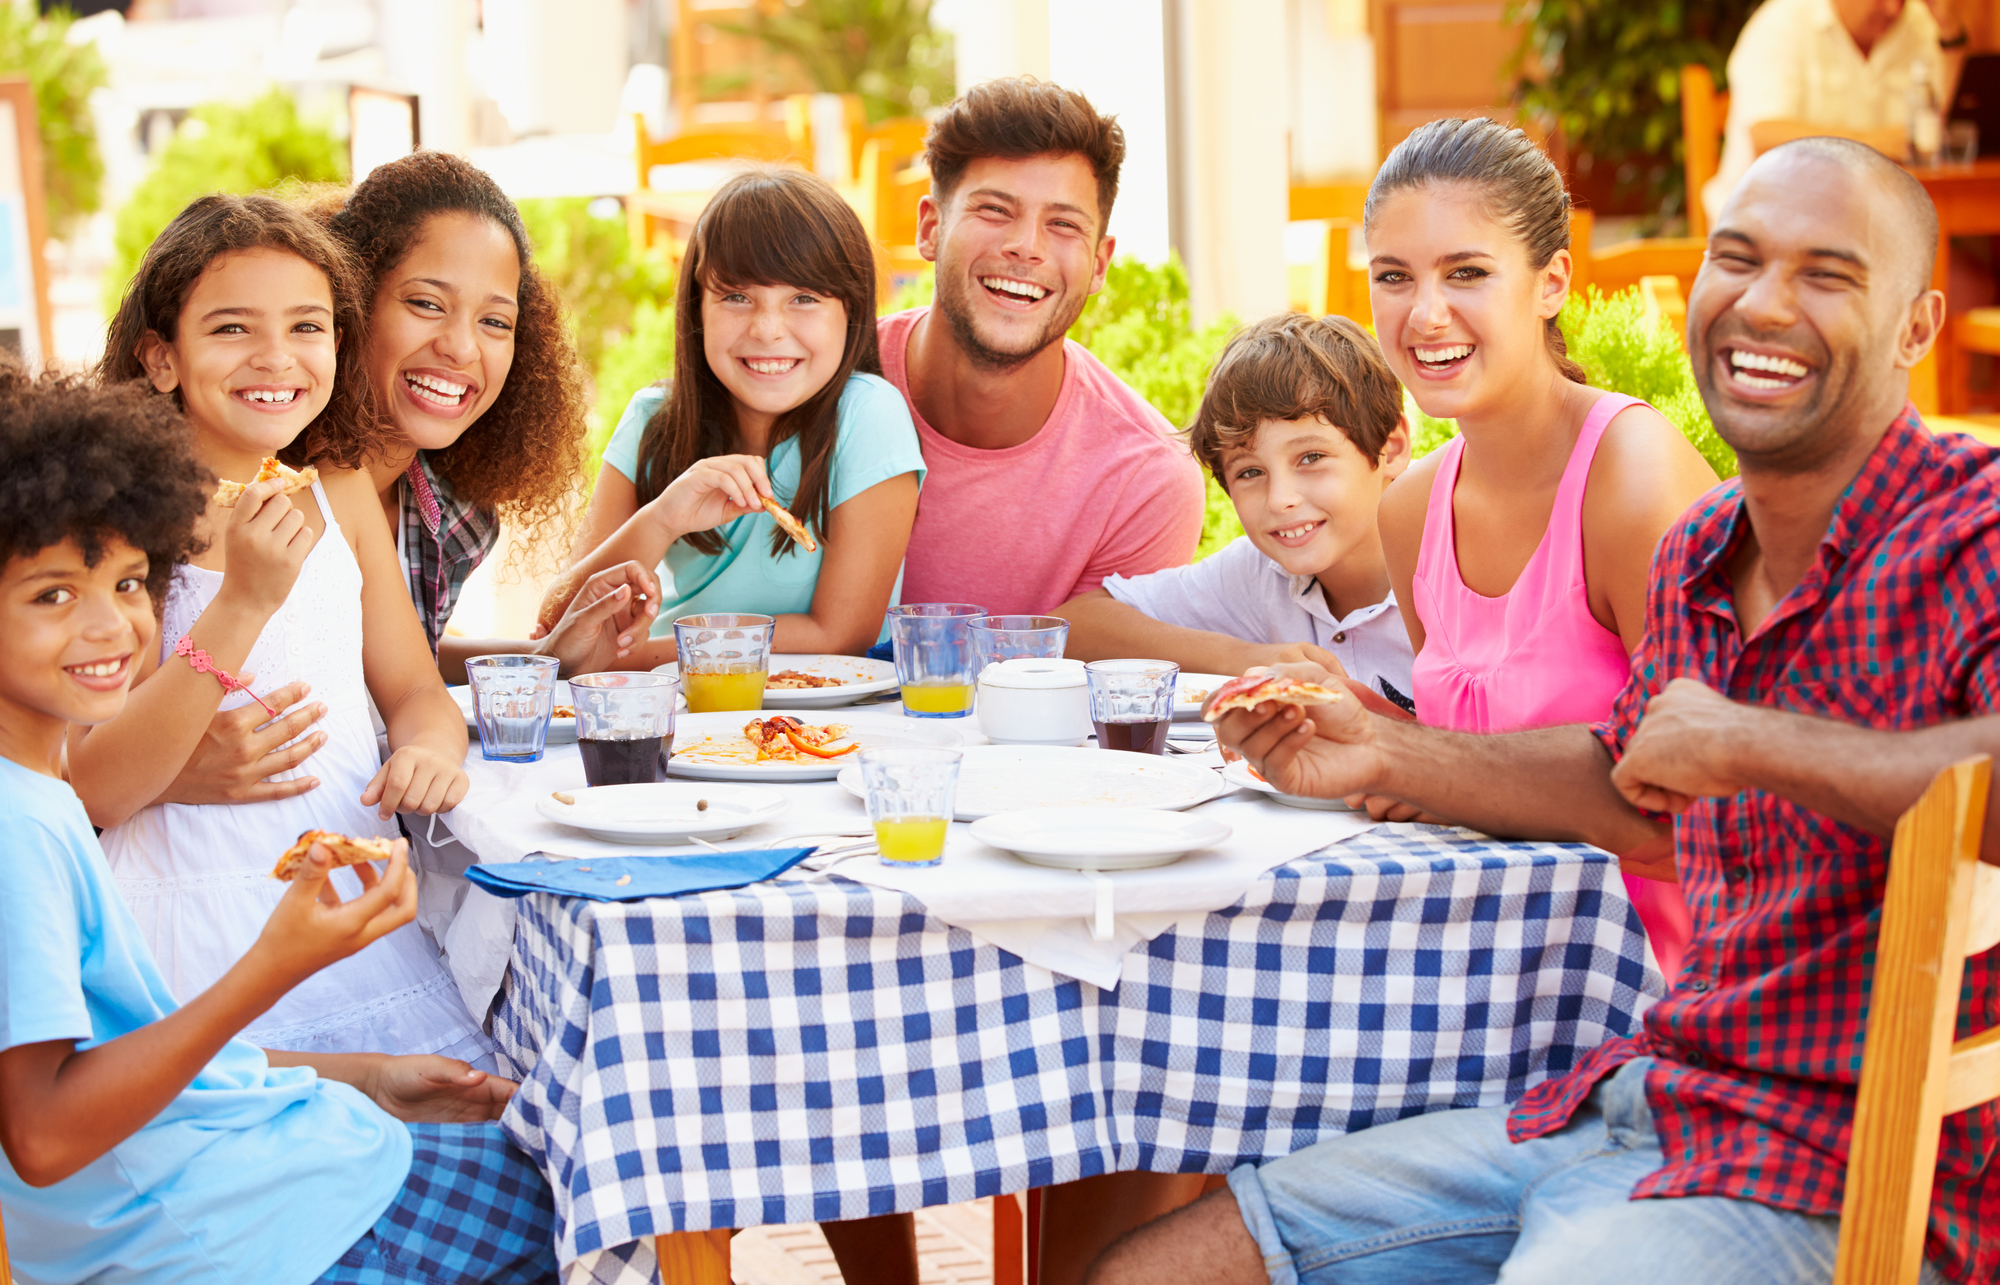 spend time with your family eating together